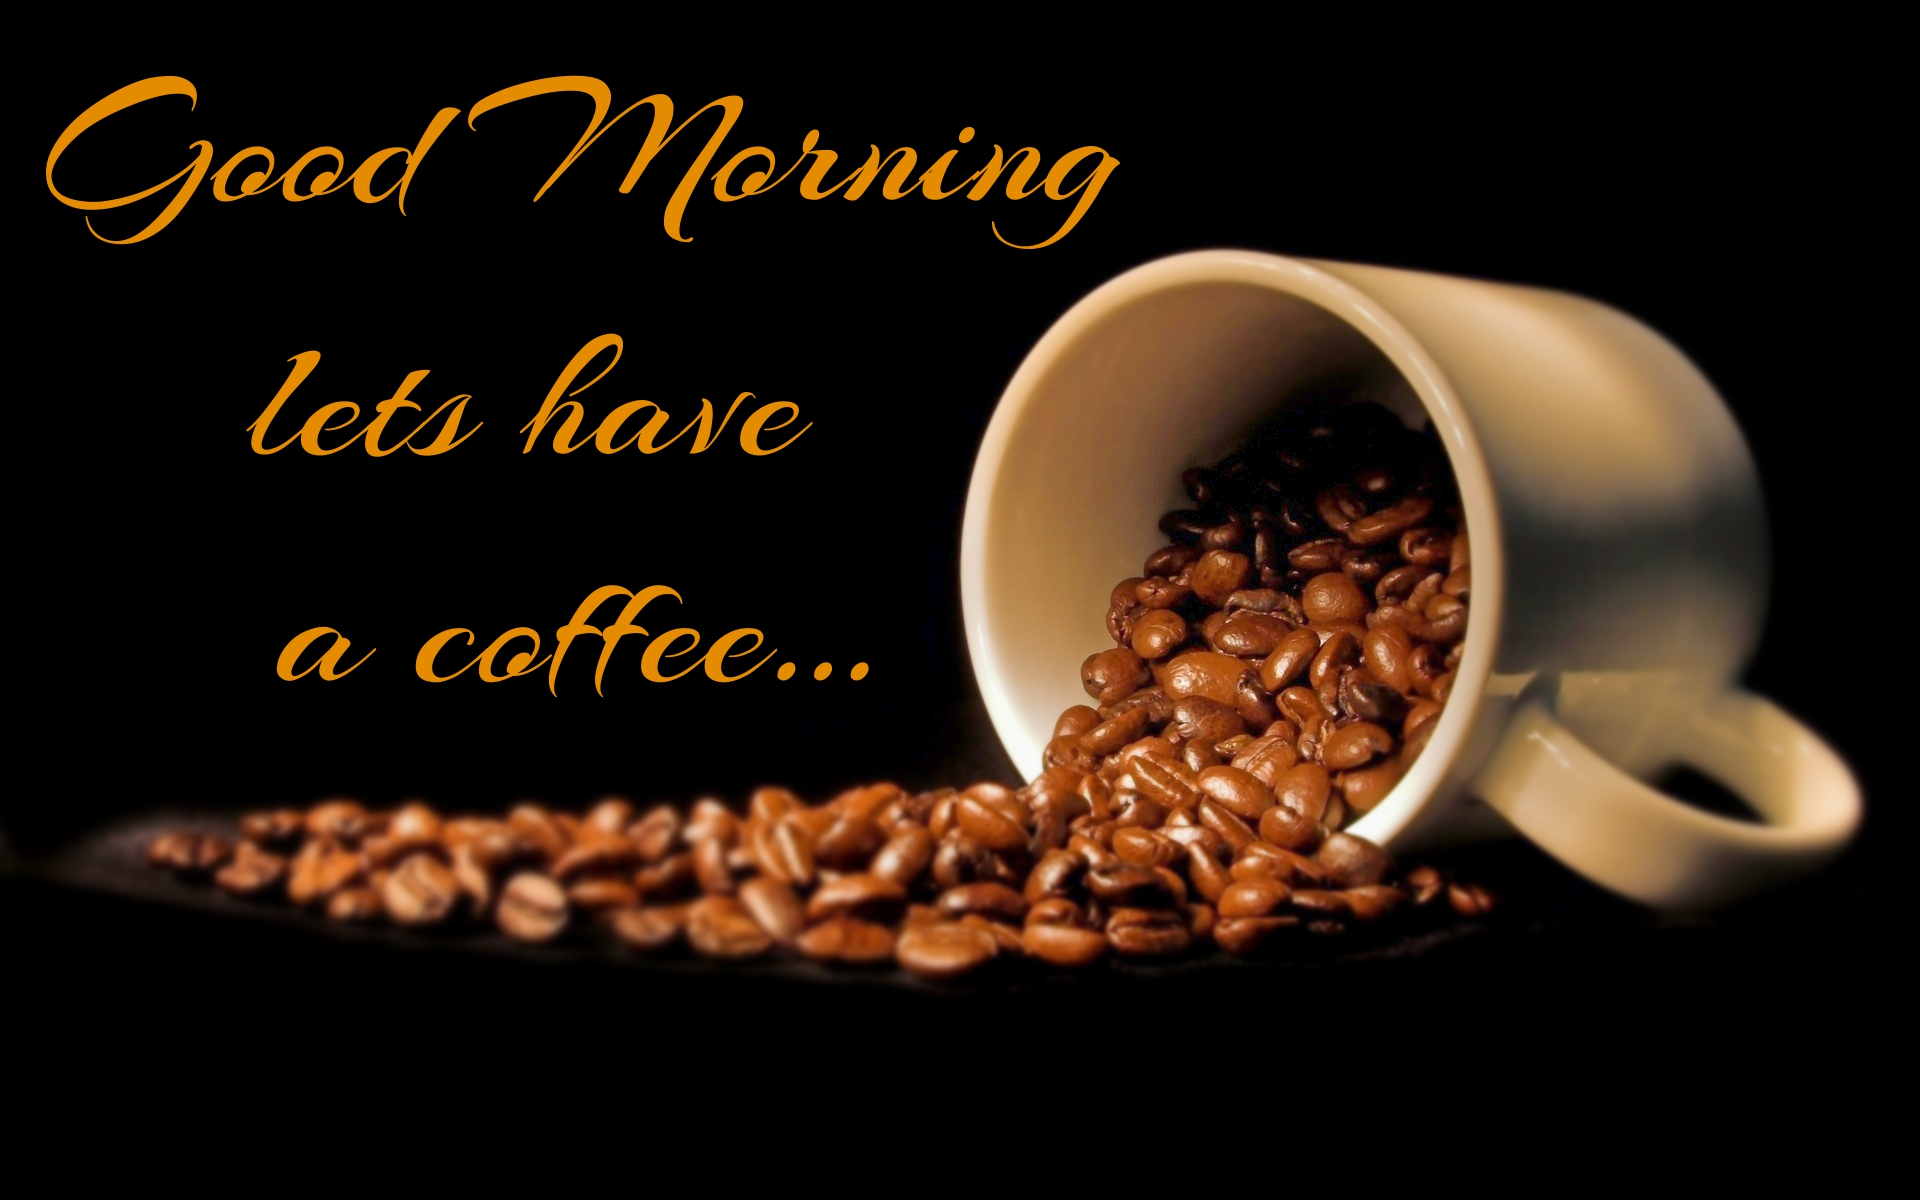 Good Morning HD Wallpaper for Desktop